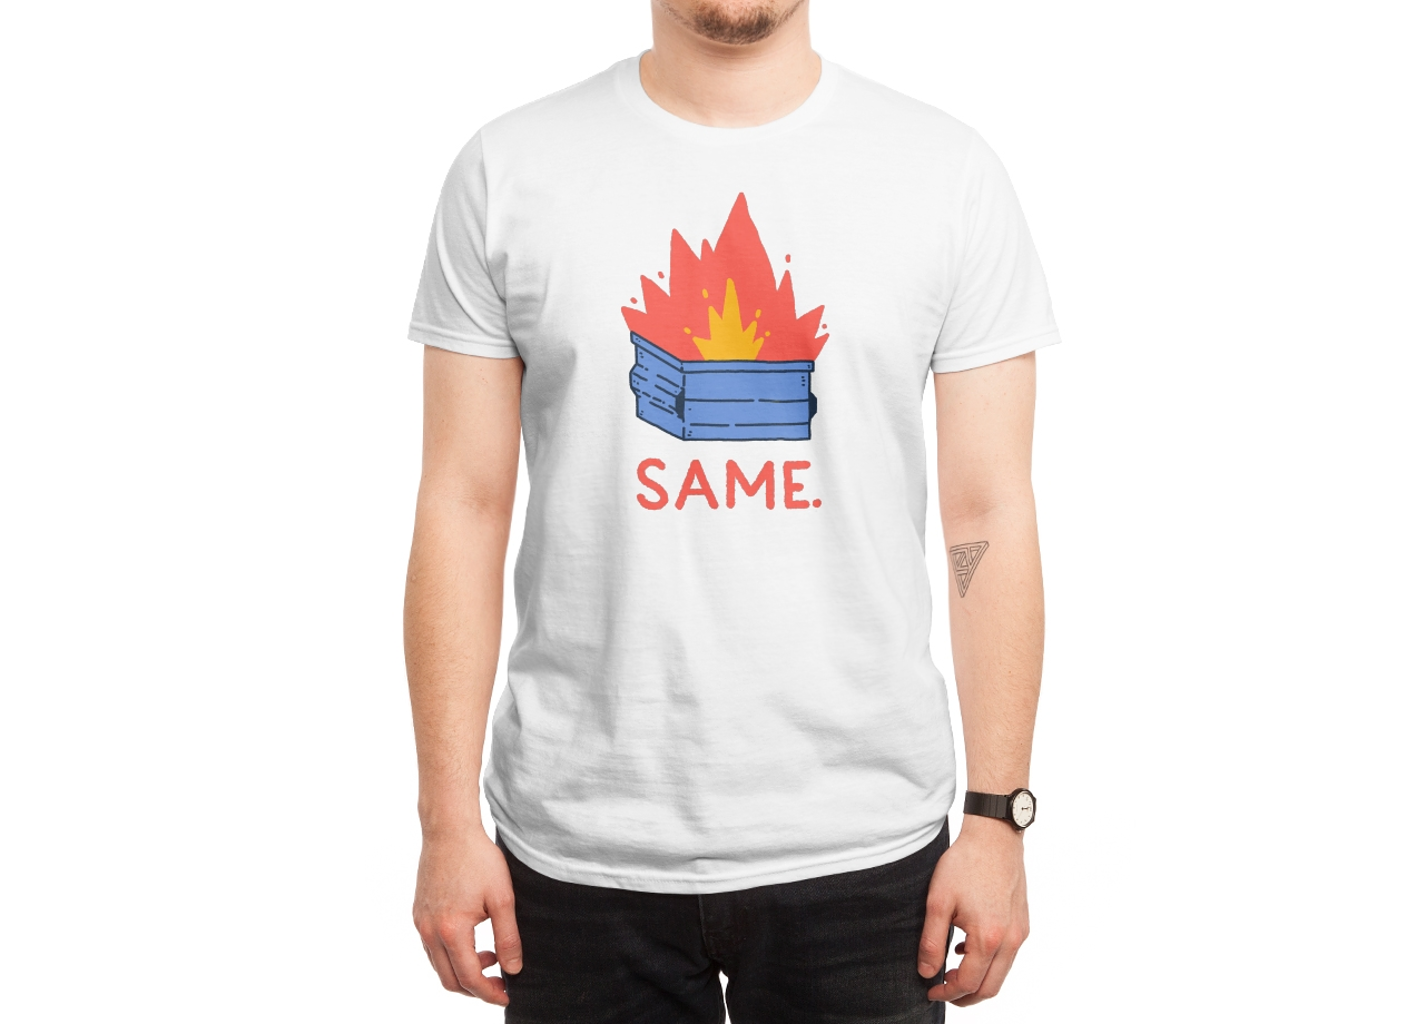 Threadless: Same.